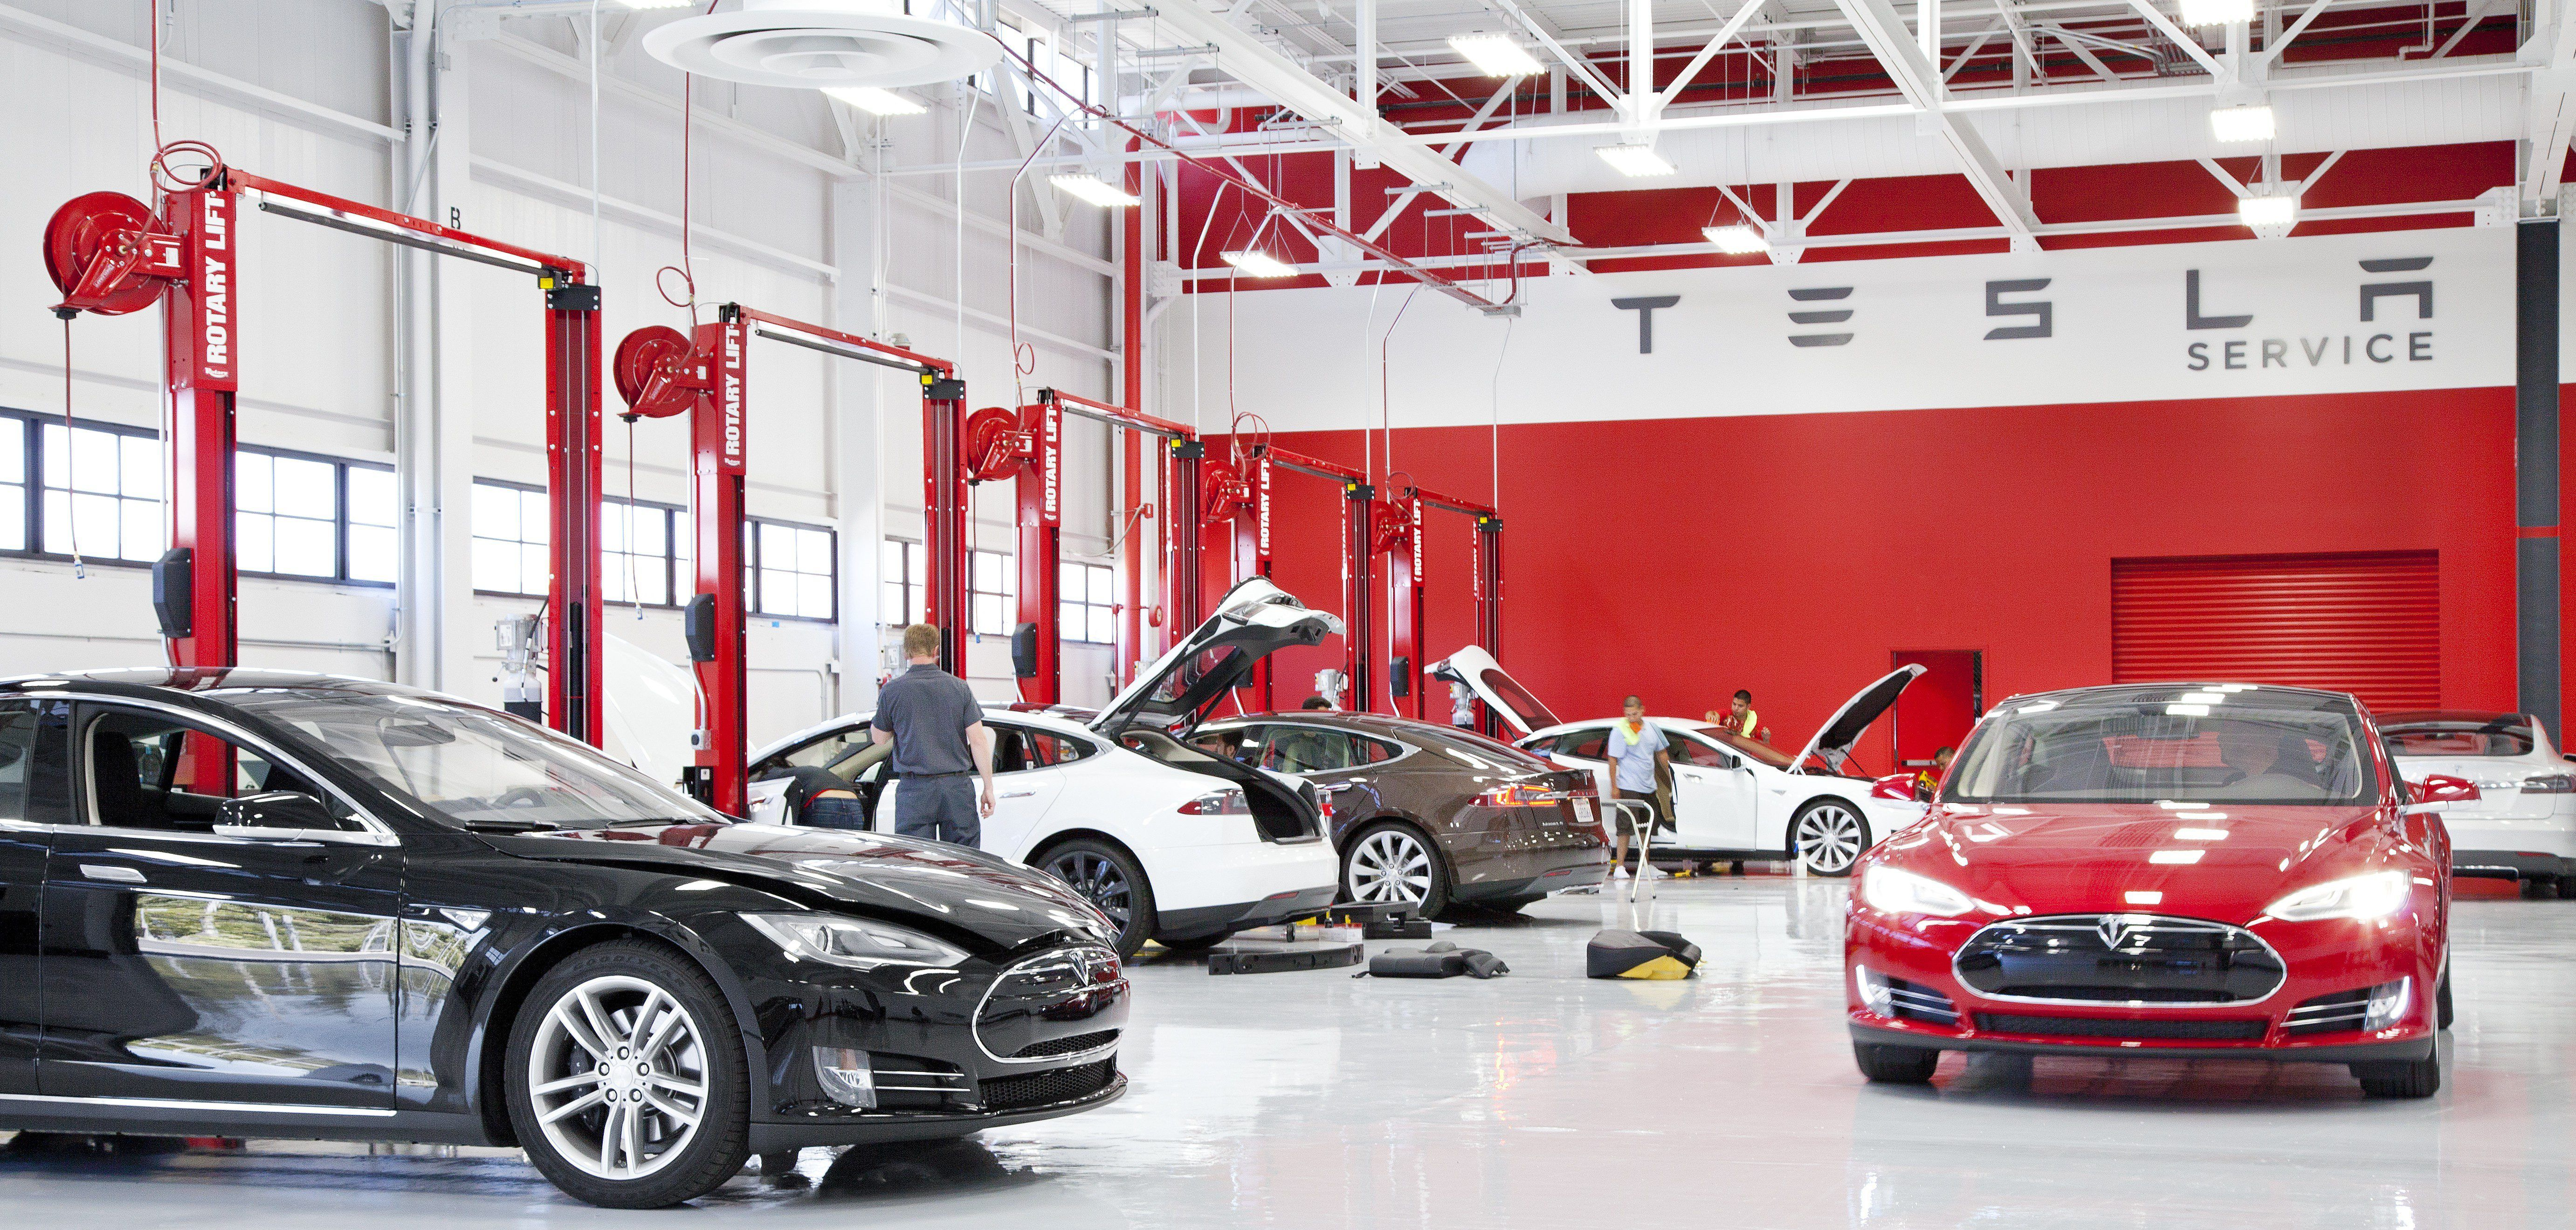 Tesla Gets A Service Center With An Expiration Date In Indiana